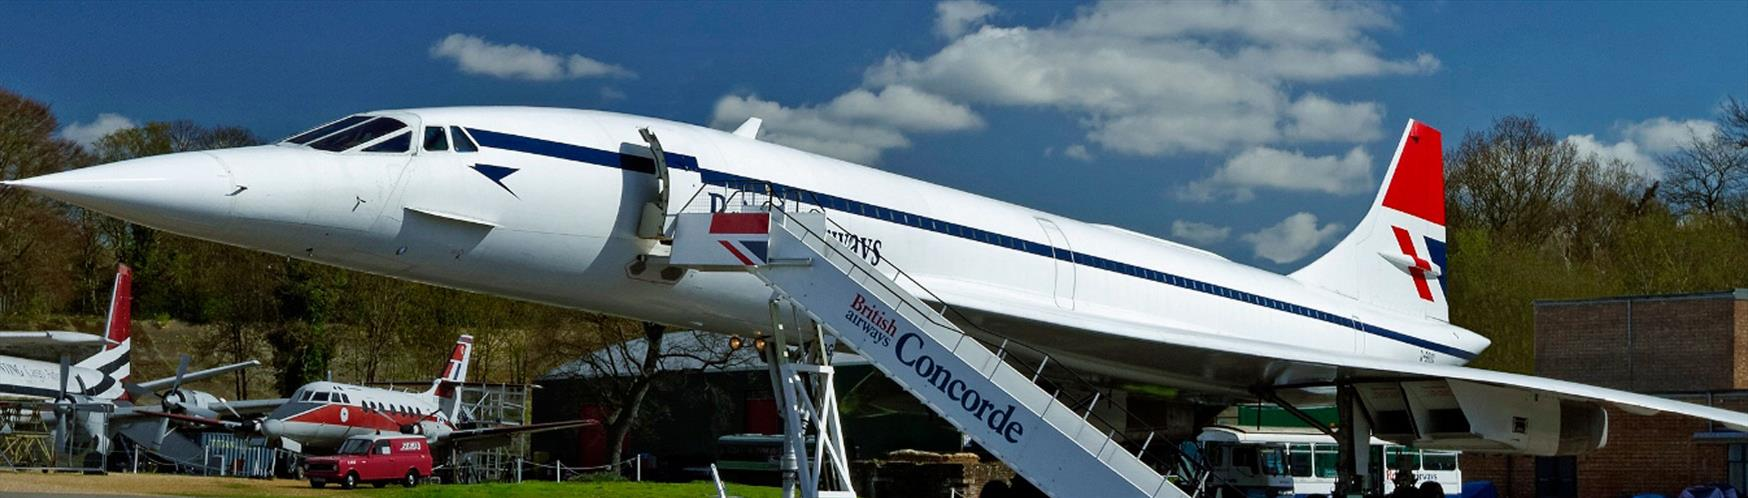 Take your seat on Concorde